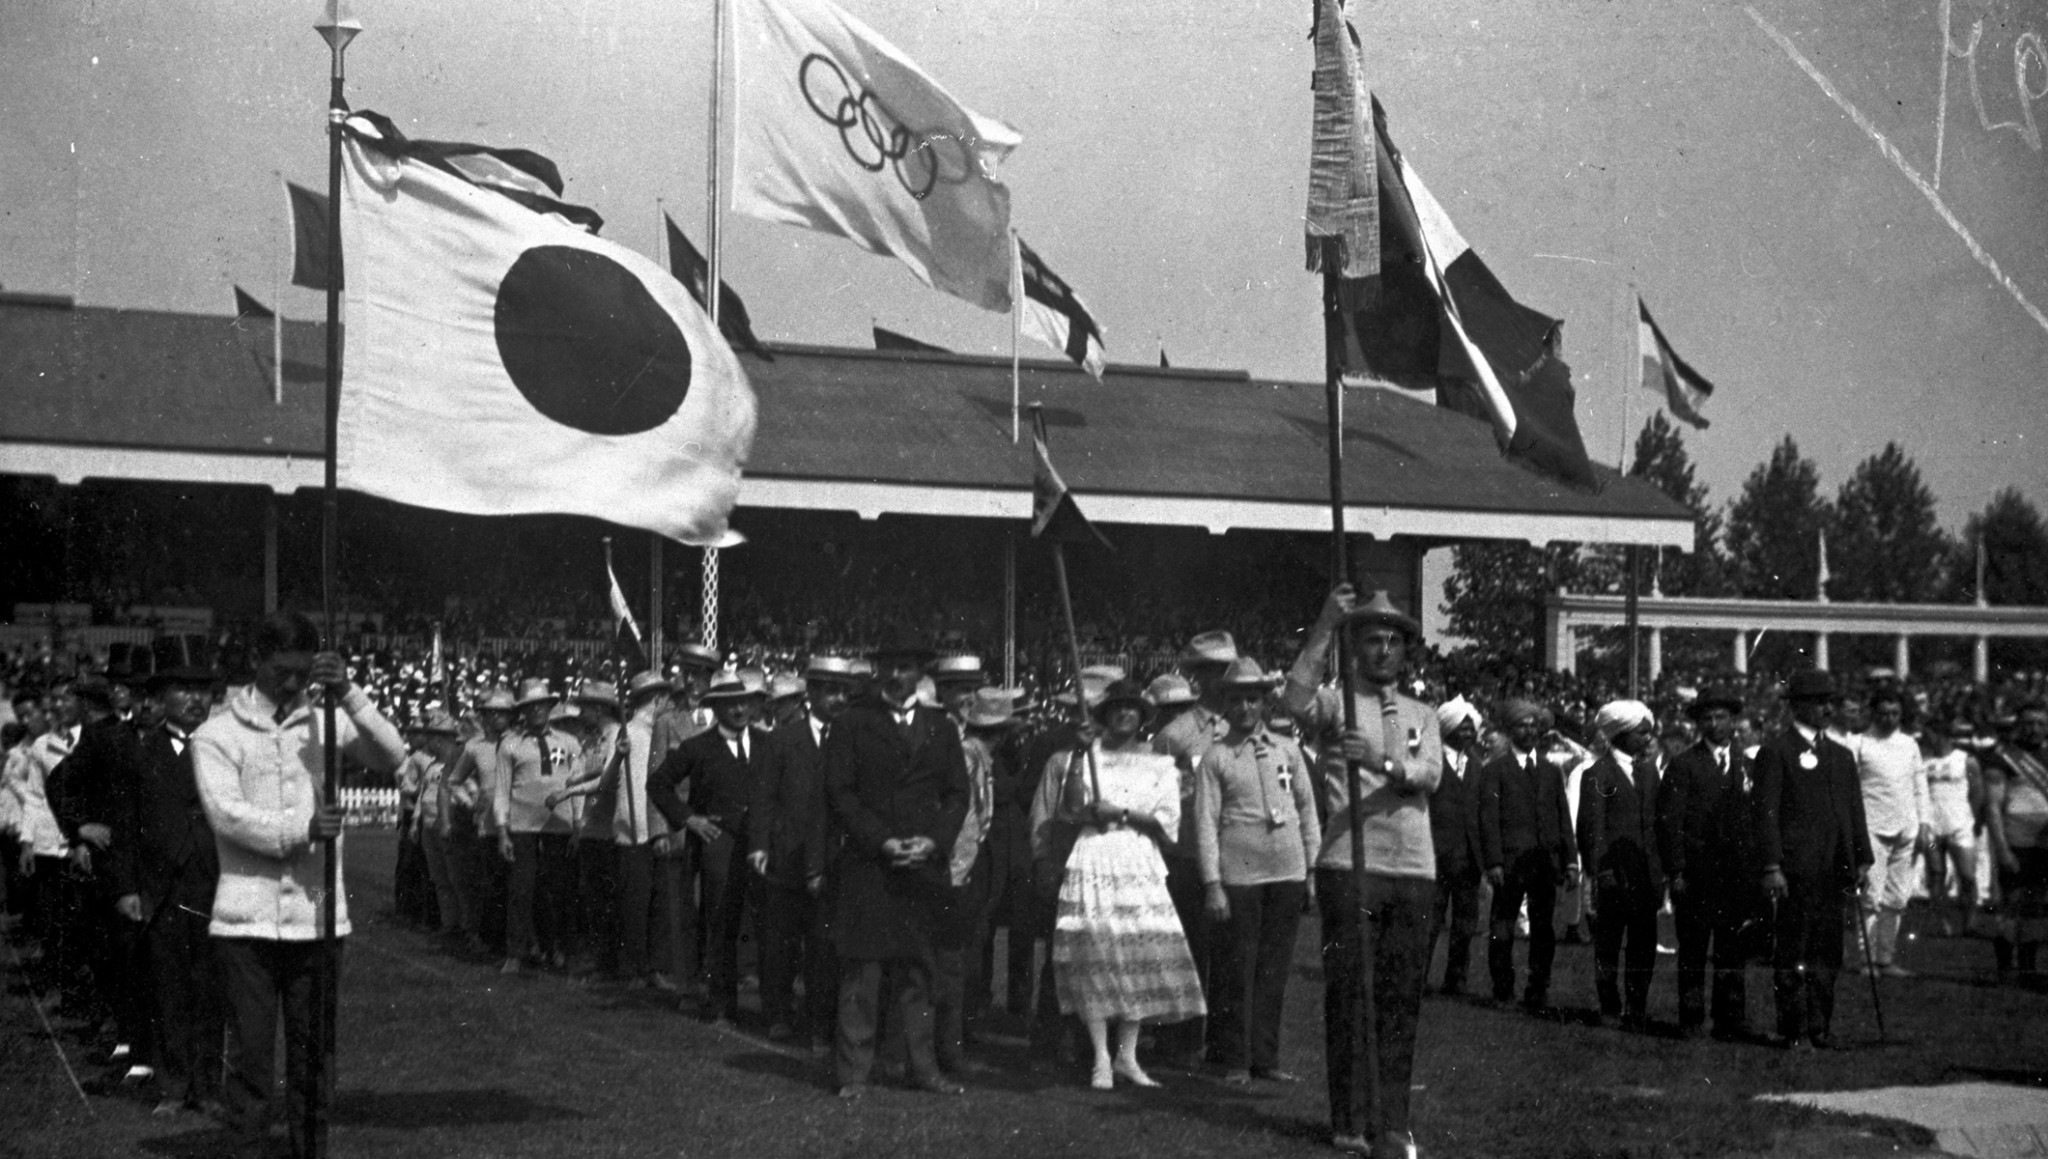 The Olympic flag was flown for the first time publicly at the 1920 Olympic Games in Antwerp ©IOC